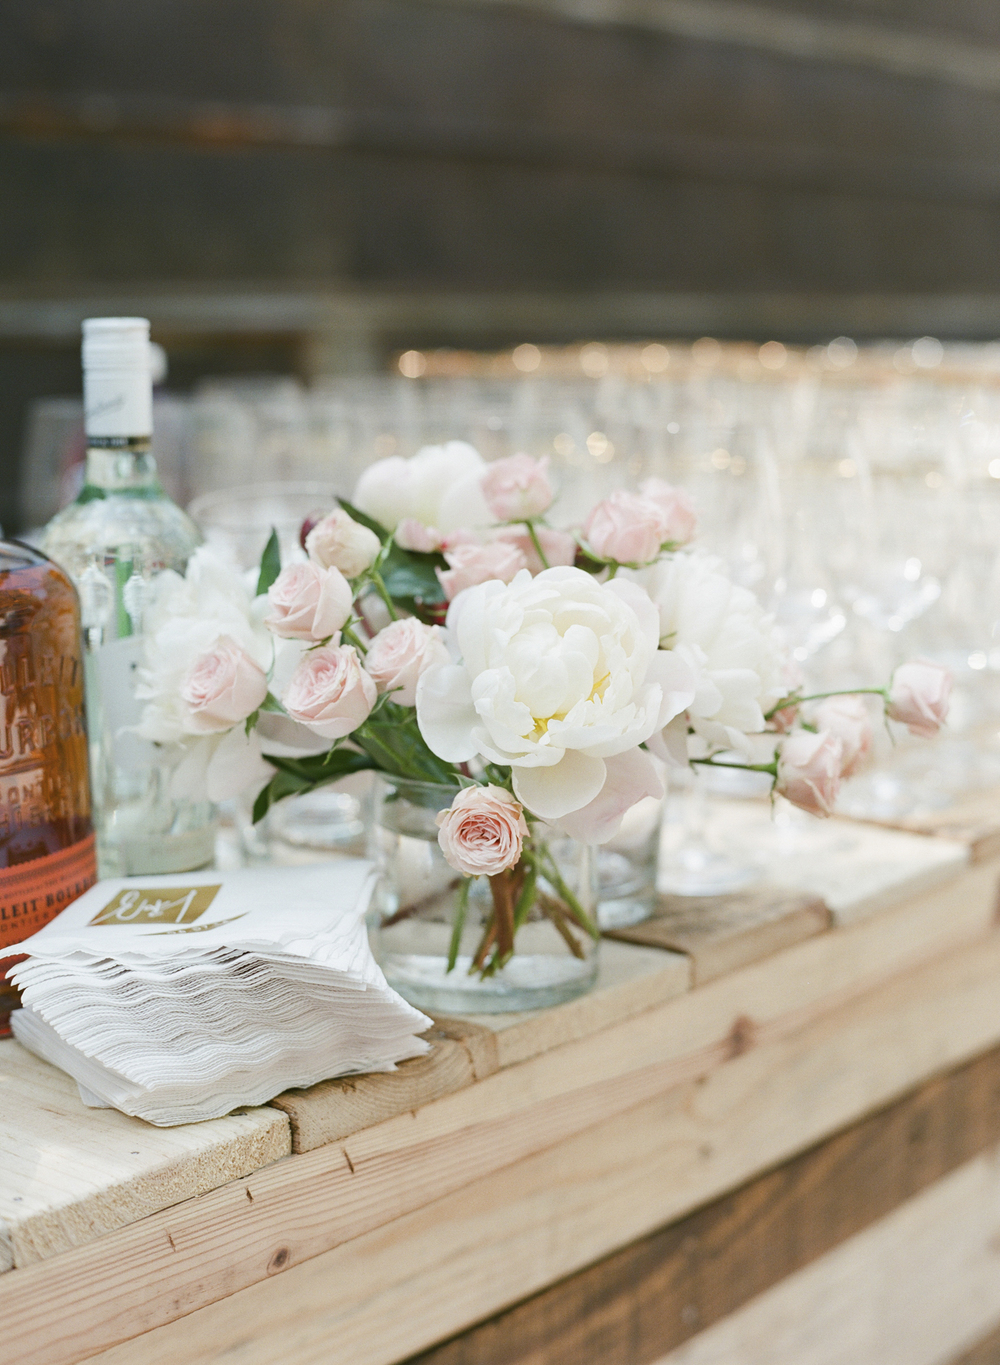 south_carolina_farm_wedding_rustic_chic_surprise_secret_luxe_wedding_bachelorette_emily_maynard_real_weddings-12.jpg